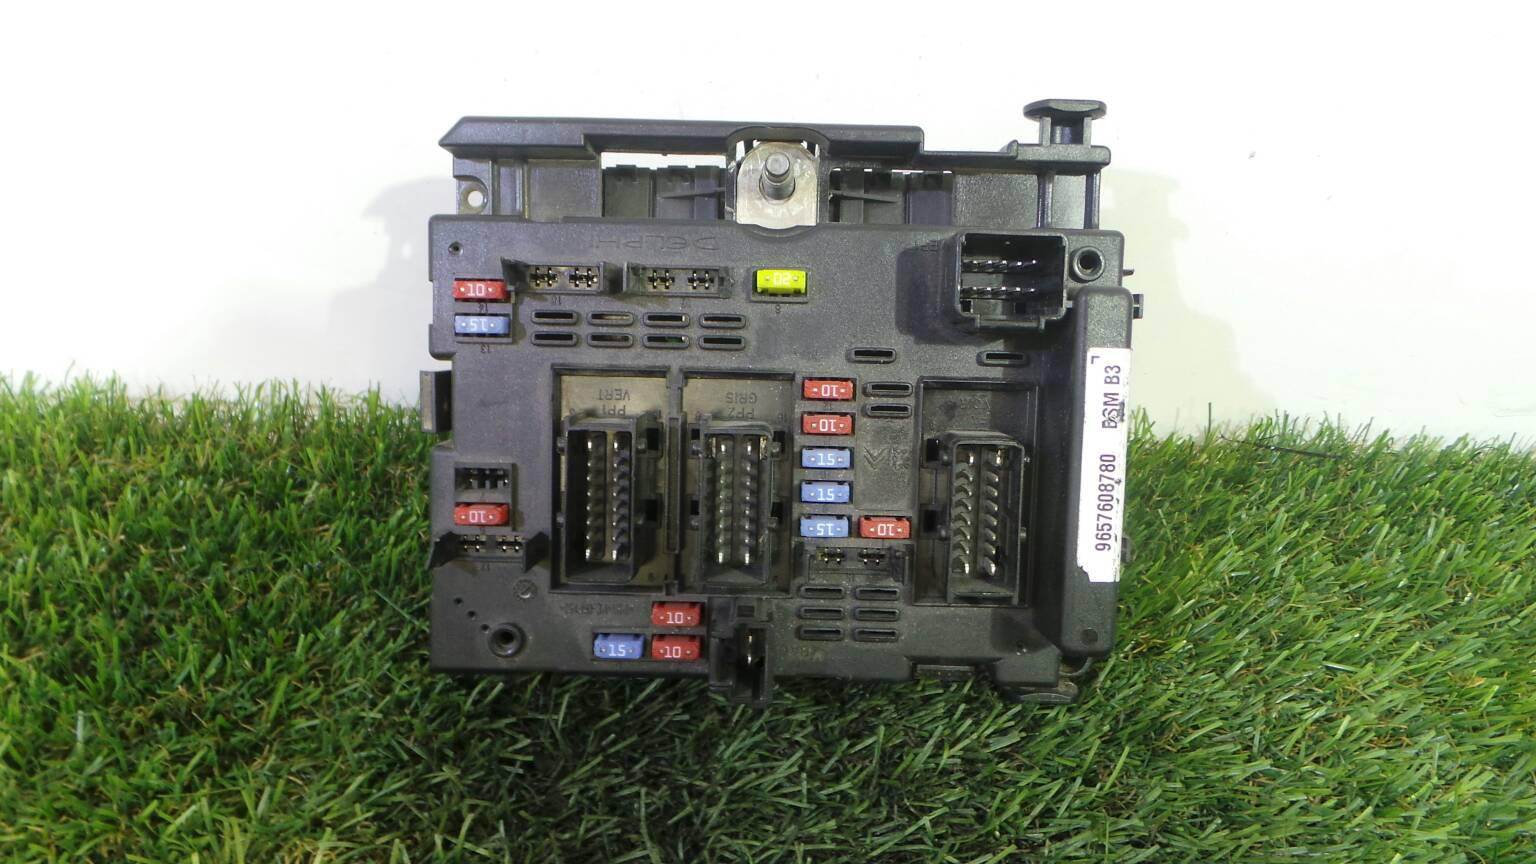 hight resolution of fuse box 96 576 087 80 citro n xsara picasso n68 1 6 hdi